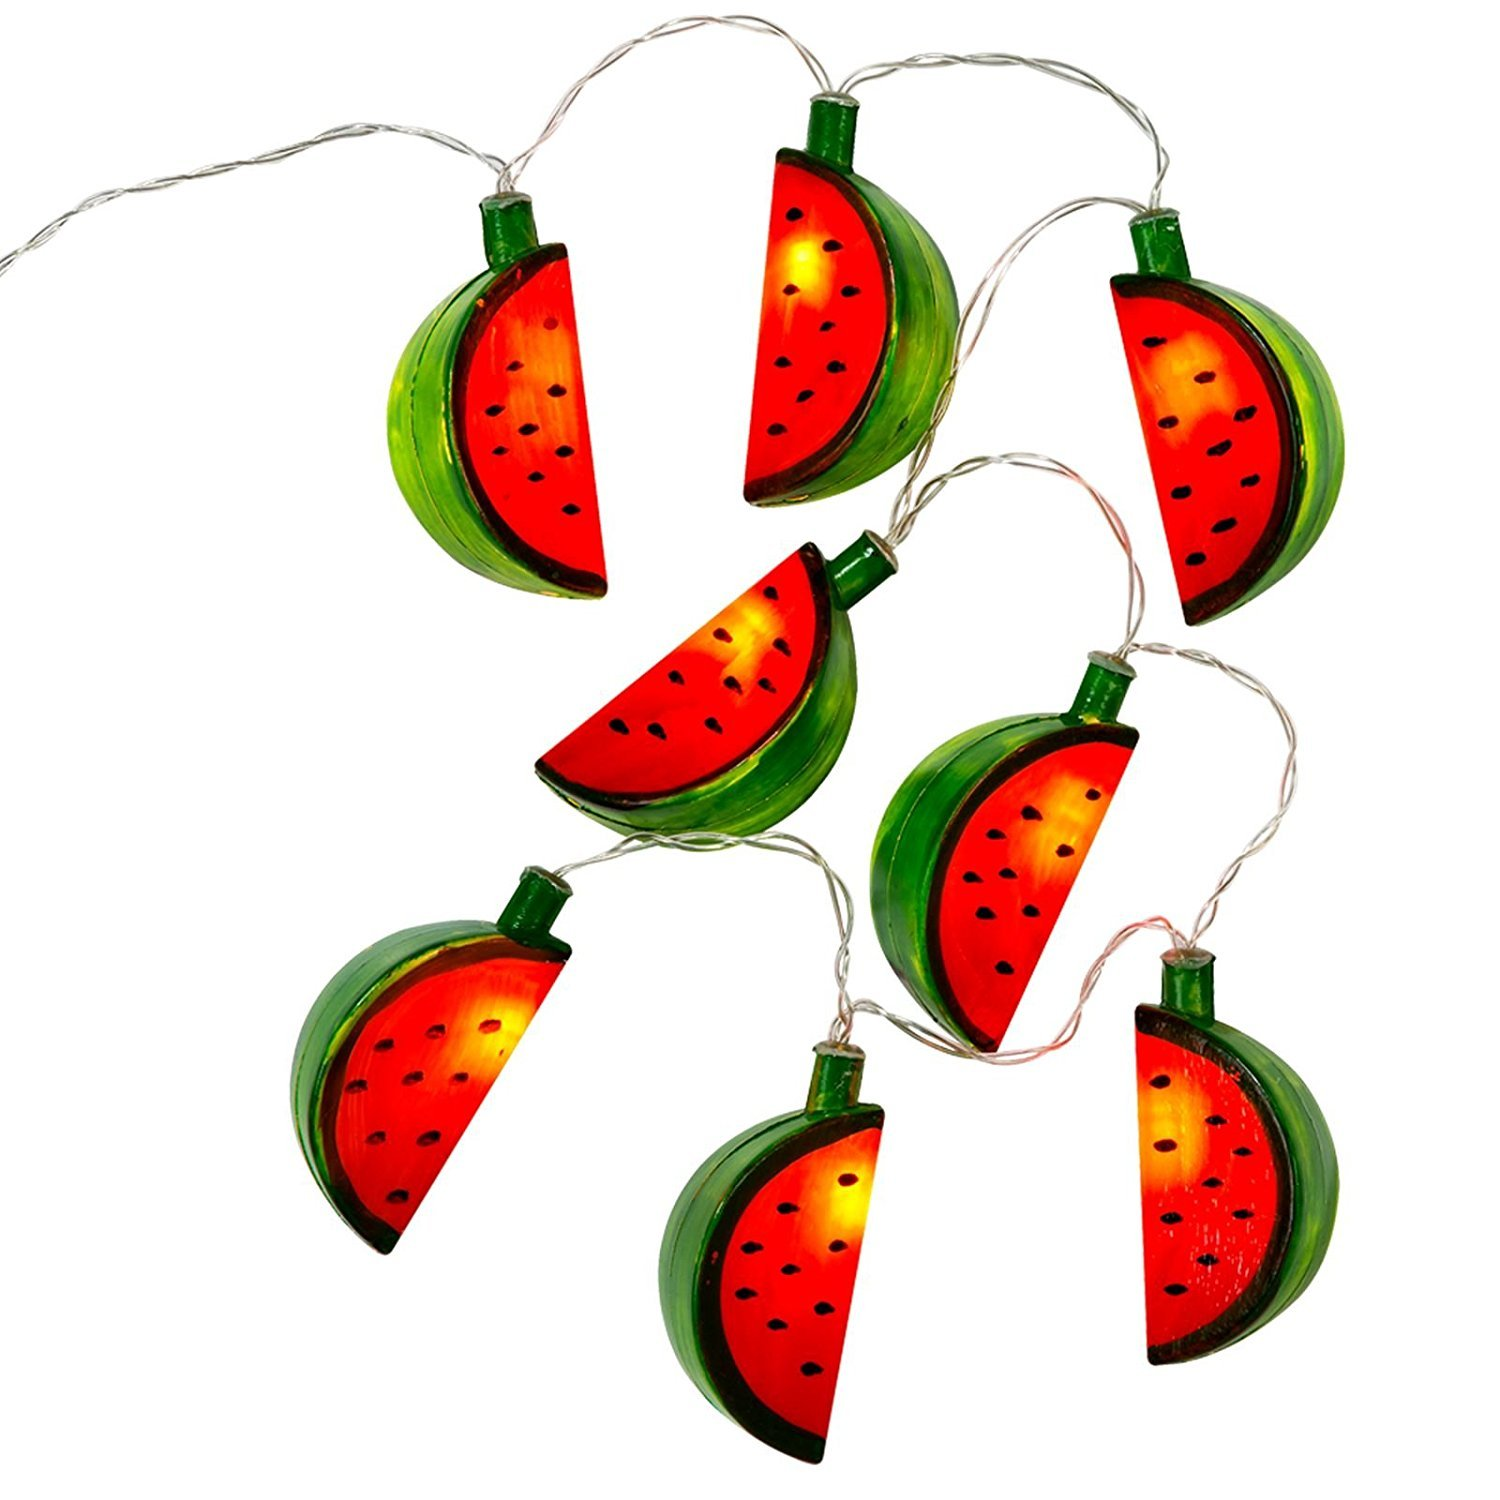 10 LED Watermelon Fairy String Light Outdoor/Indoor Christmas Led String Lights Battery Powered for House Plastic Garden Hanging Lamp Wedding Festive Beach Party Supplies Home DIY Decoration Summer